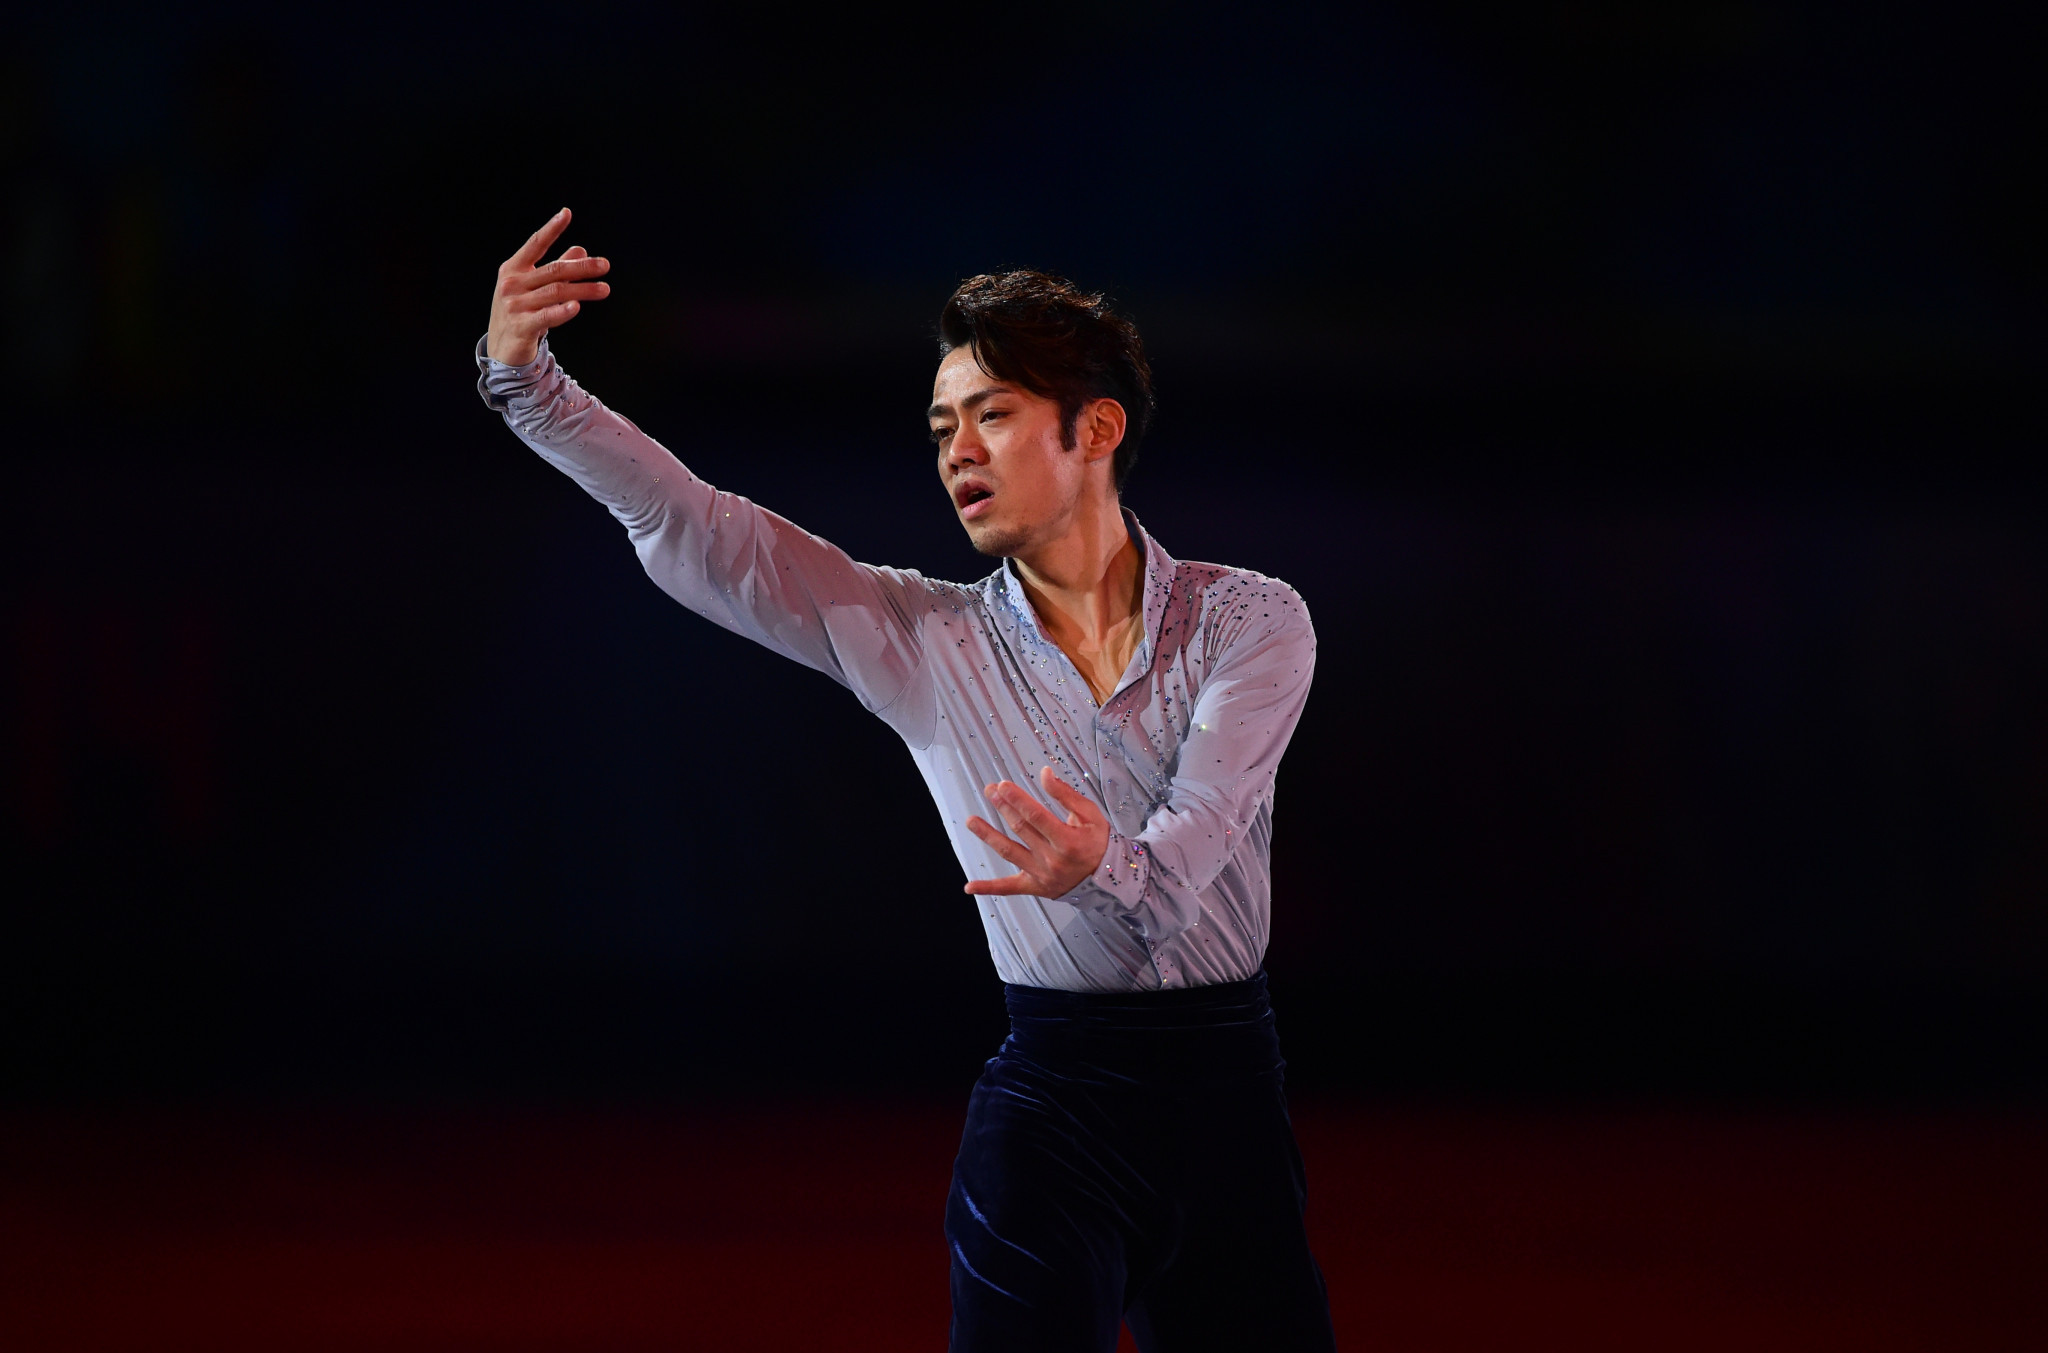 Former world champion comes out of retirement to return to figure skating